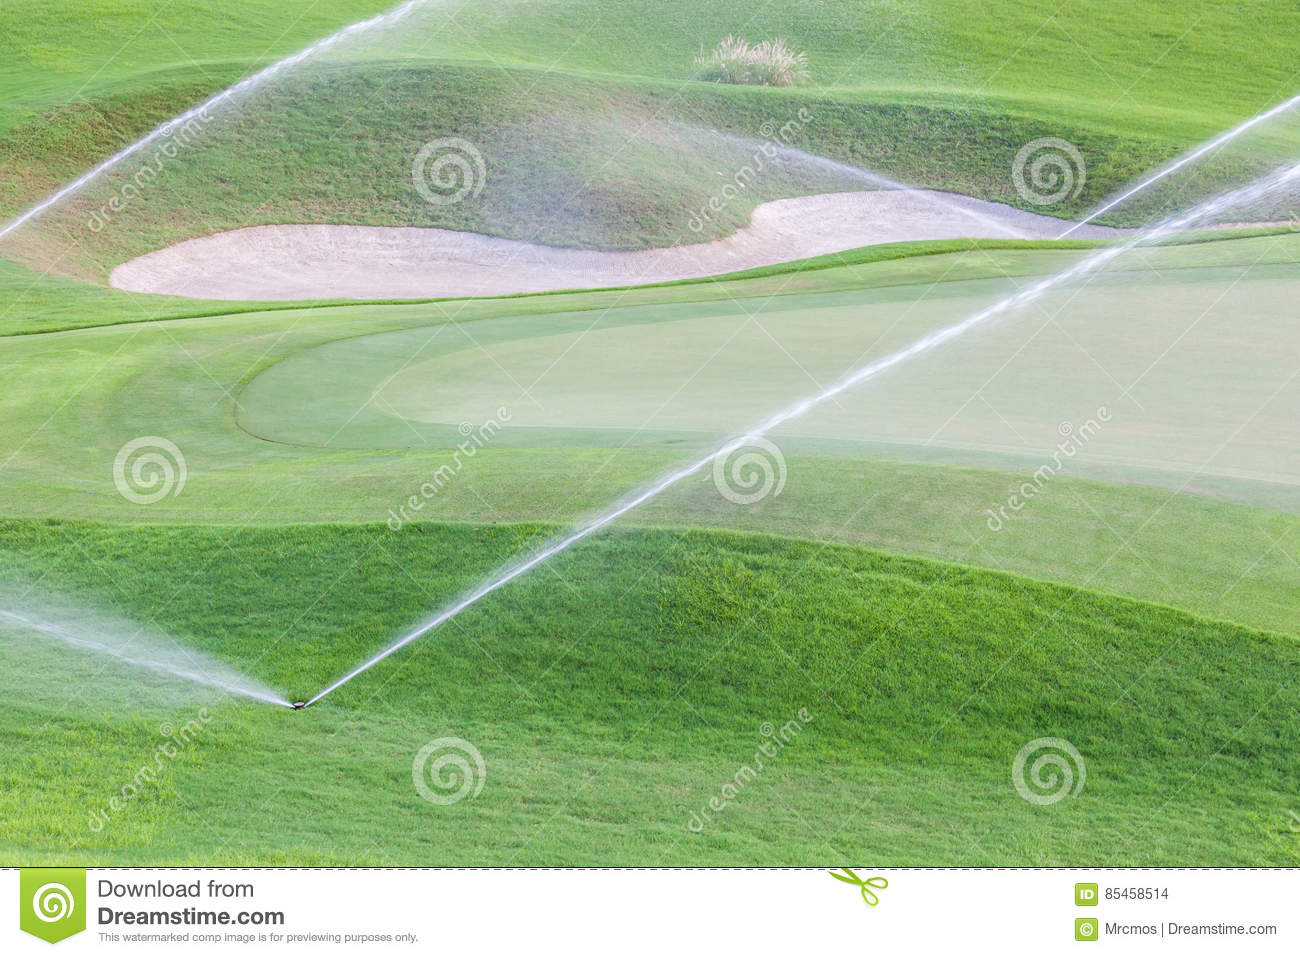 Download Sprinklers Watering System Working In Green Golf Course. Stock Photo - Image of meadow, garden: 85458514